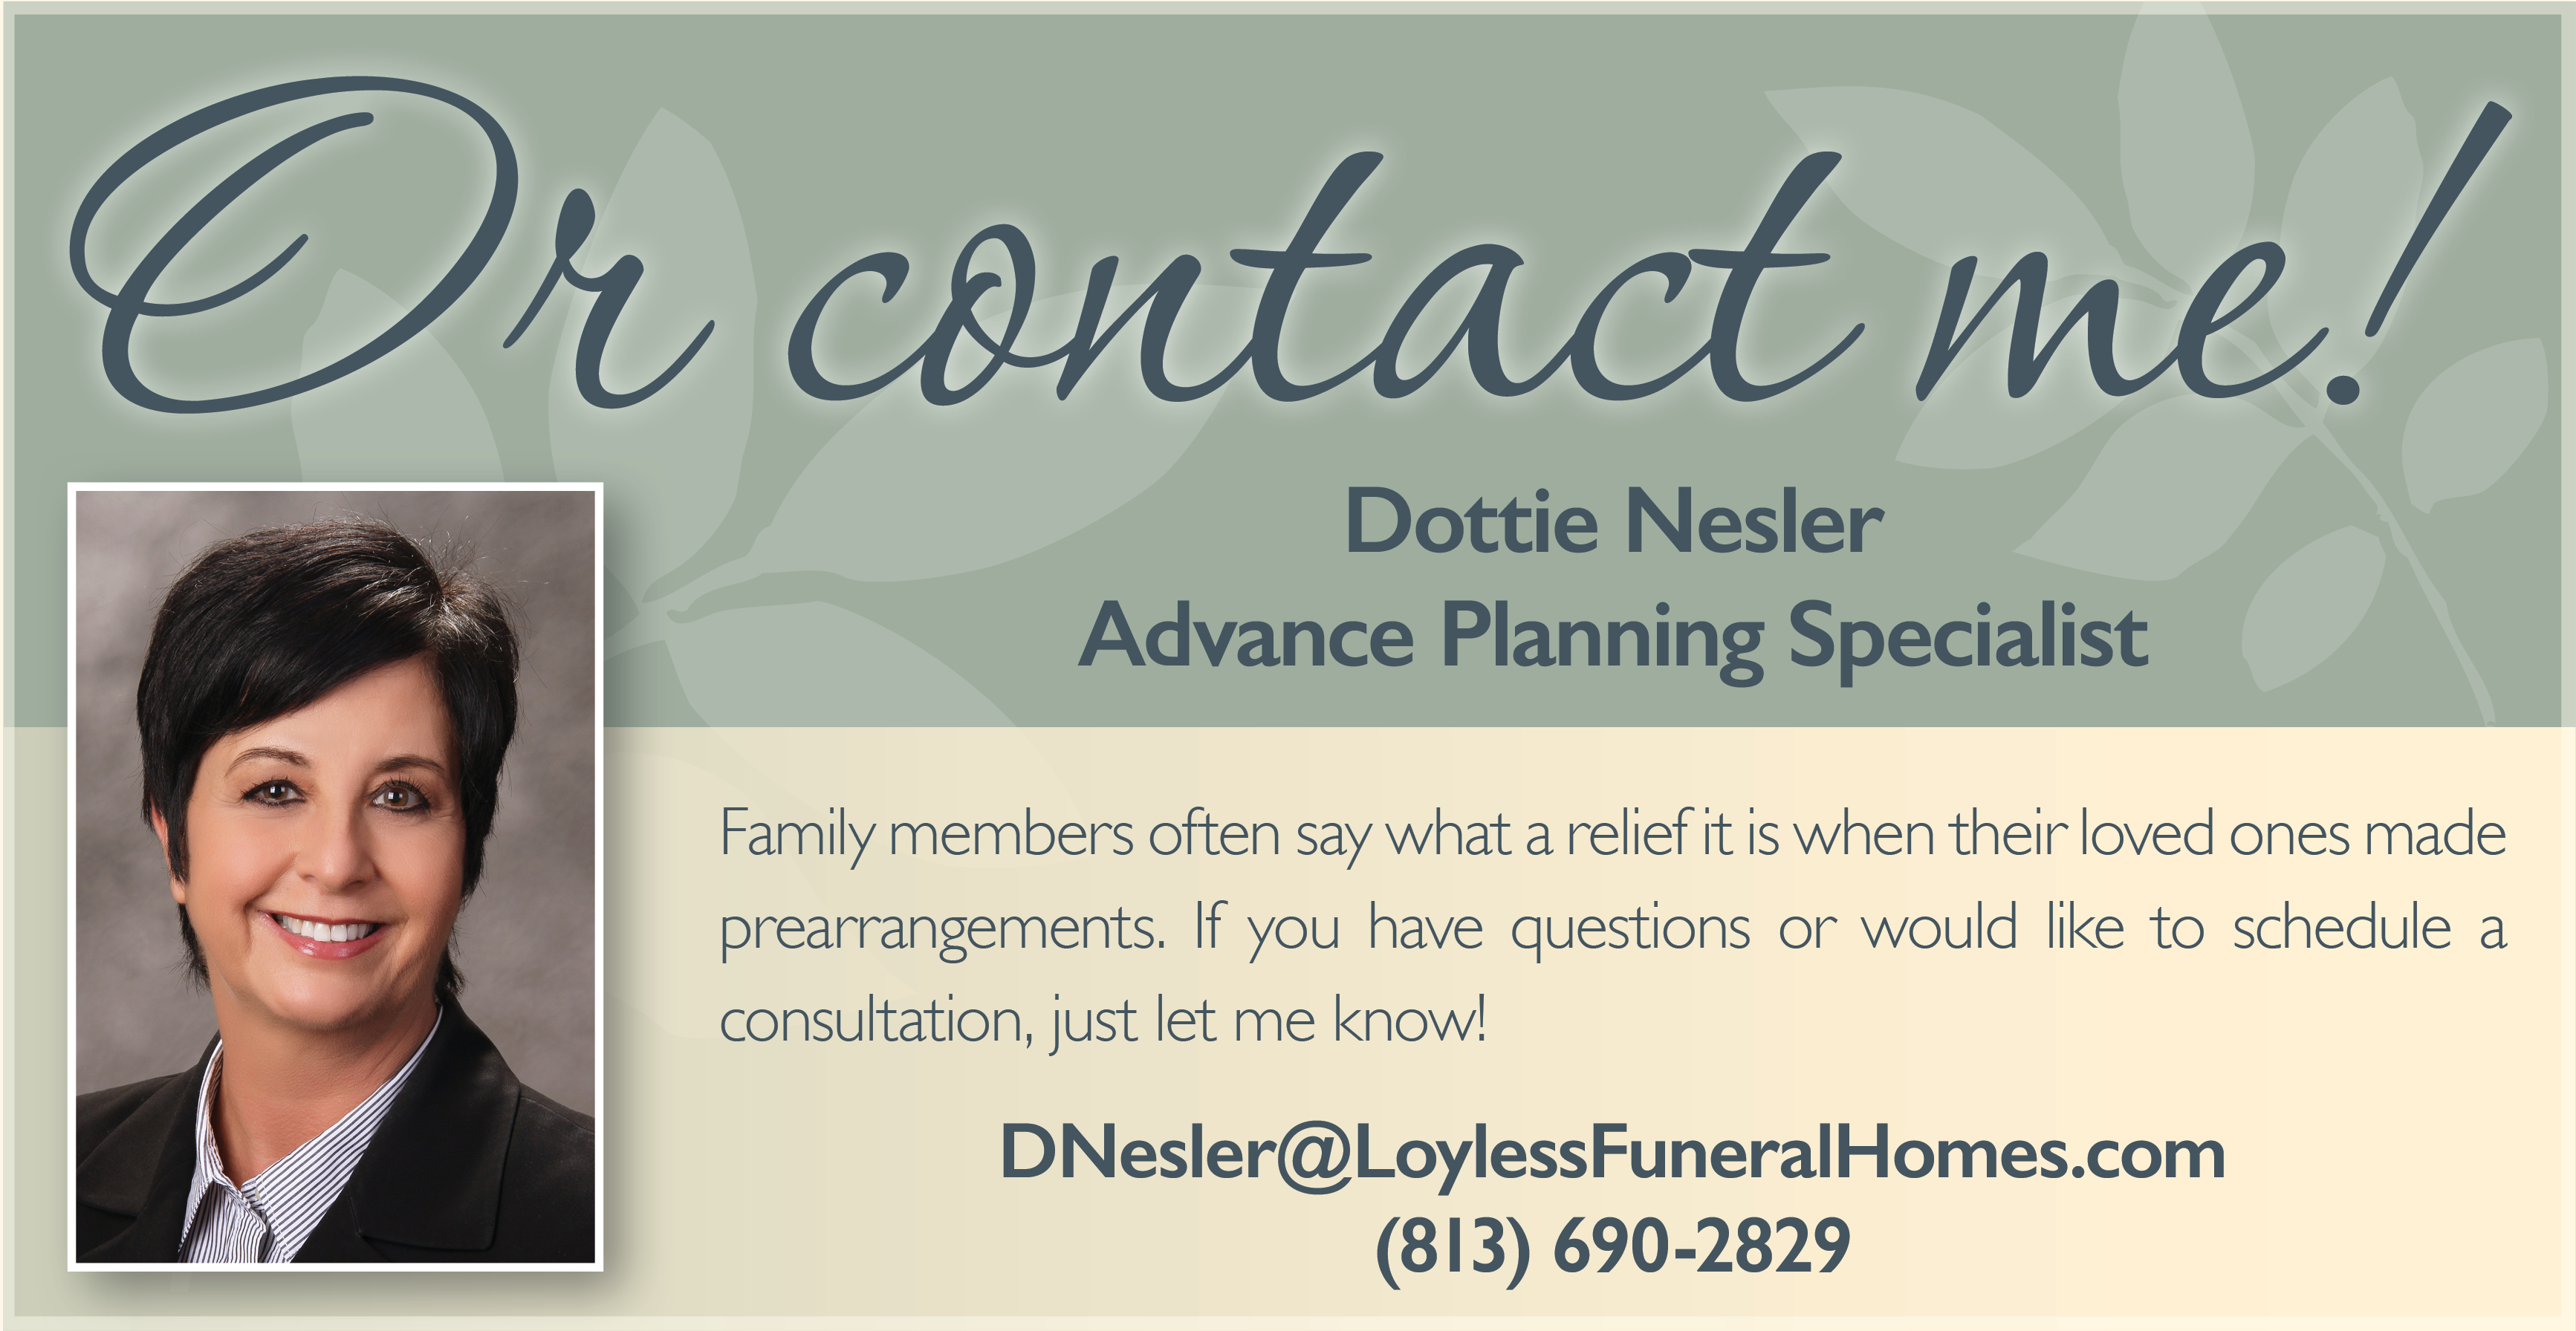 Contact Dottie Nesler, Advance Planning Specialist